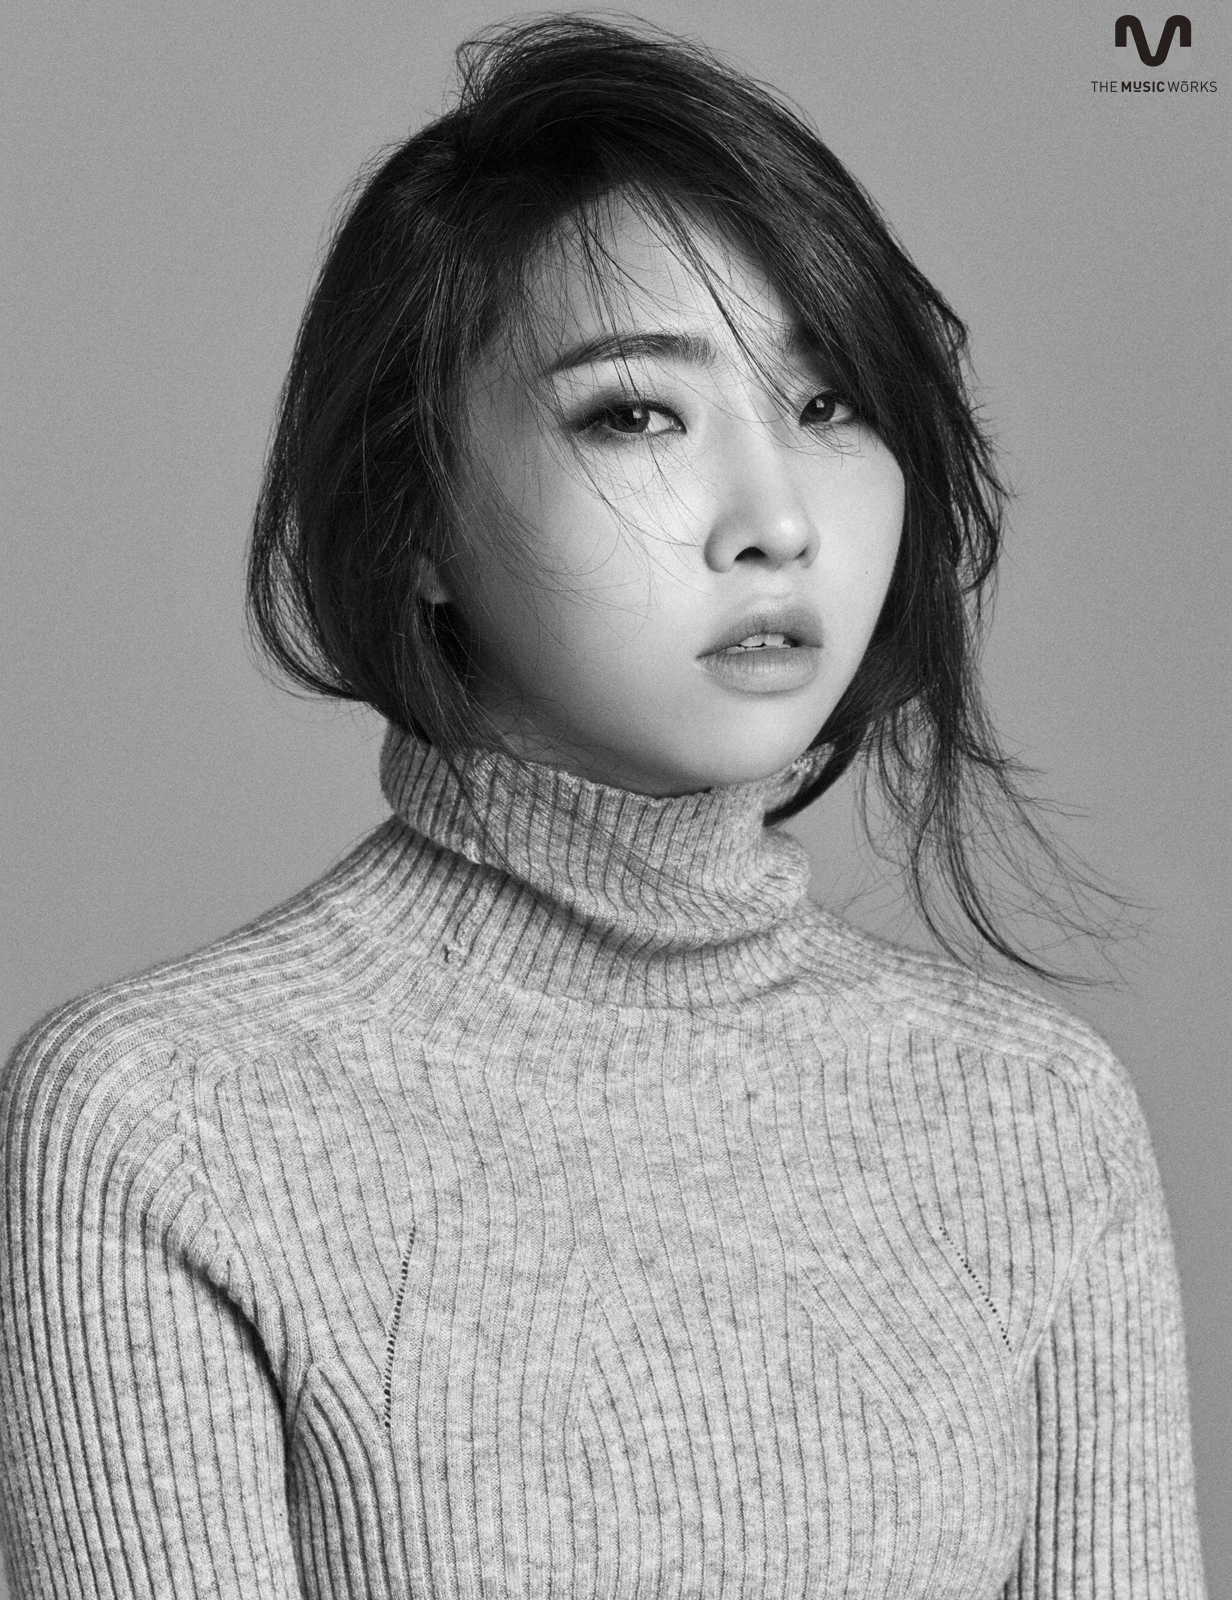 Image: Minzy's Instagram / Dispatch